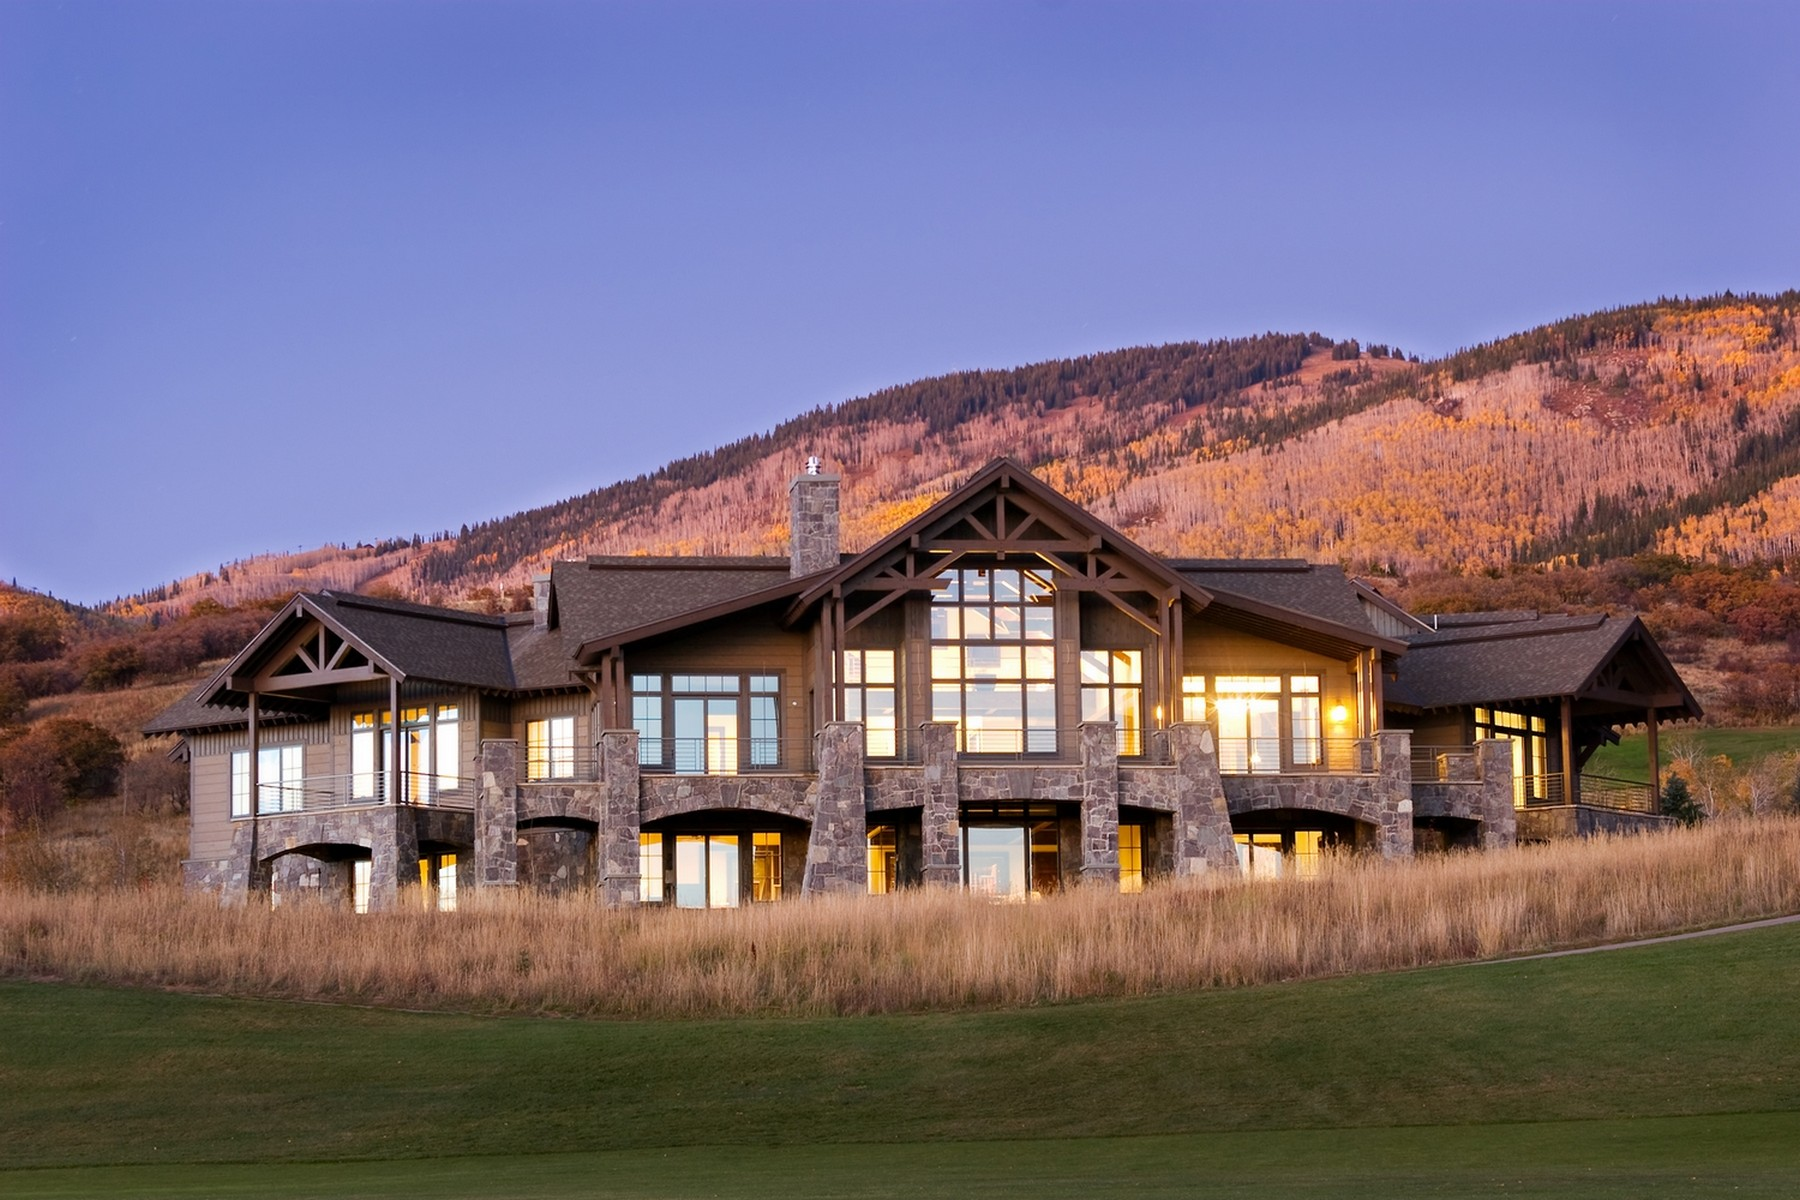 Villa per Vendita alle ore 33560 Catamount Drive South Valley, Steamboat Springs, Colorado, 80487 Stati Uniti